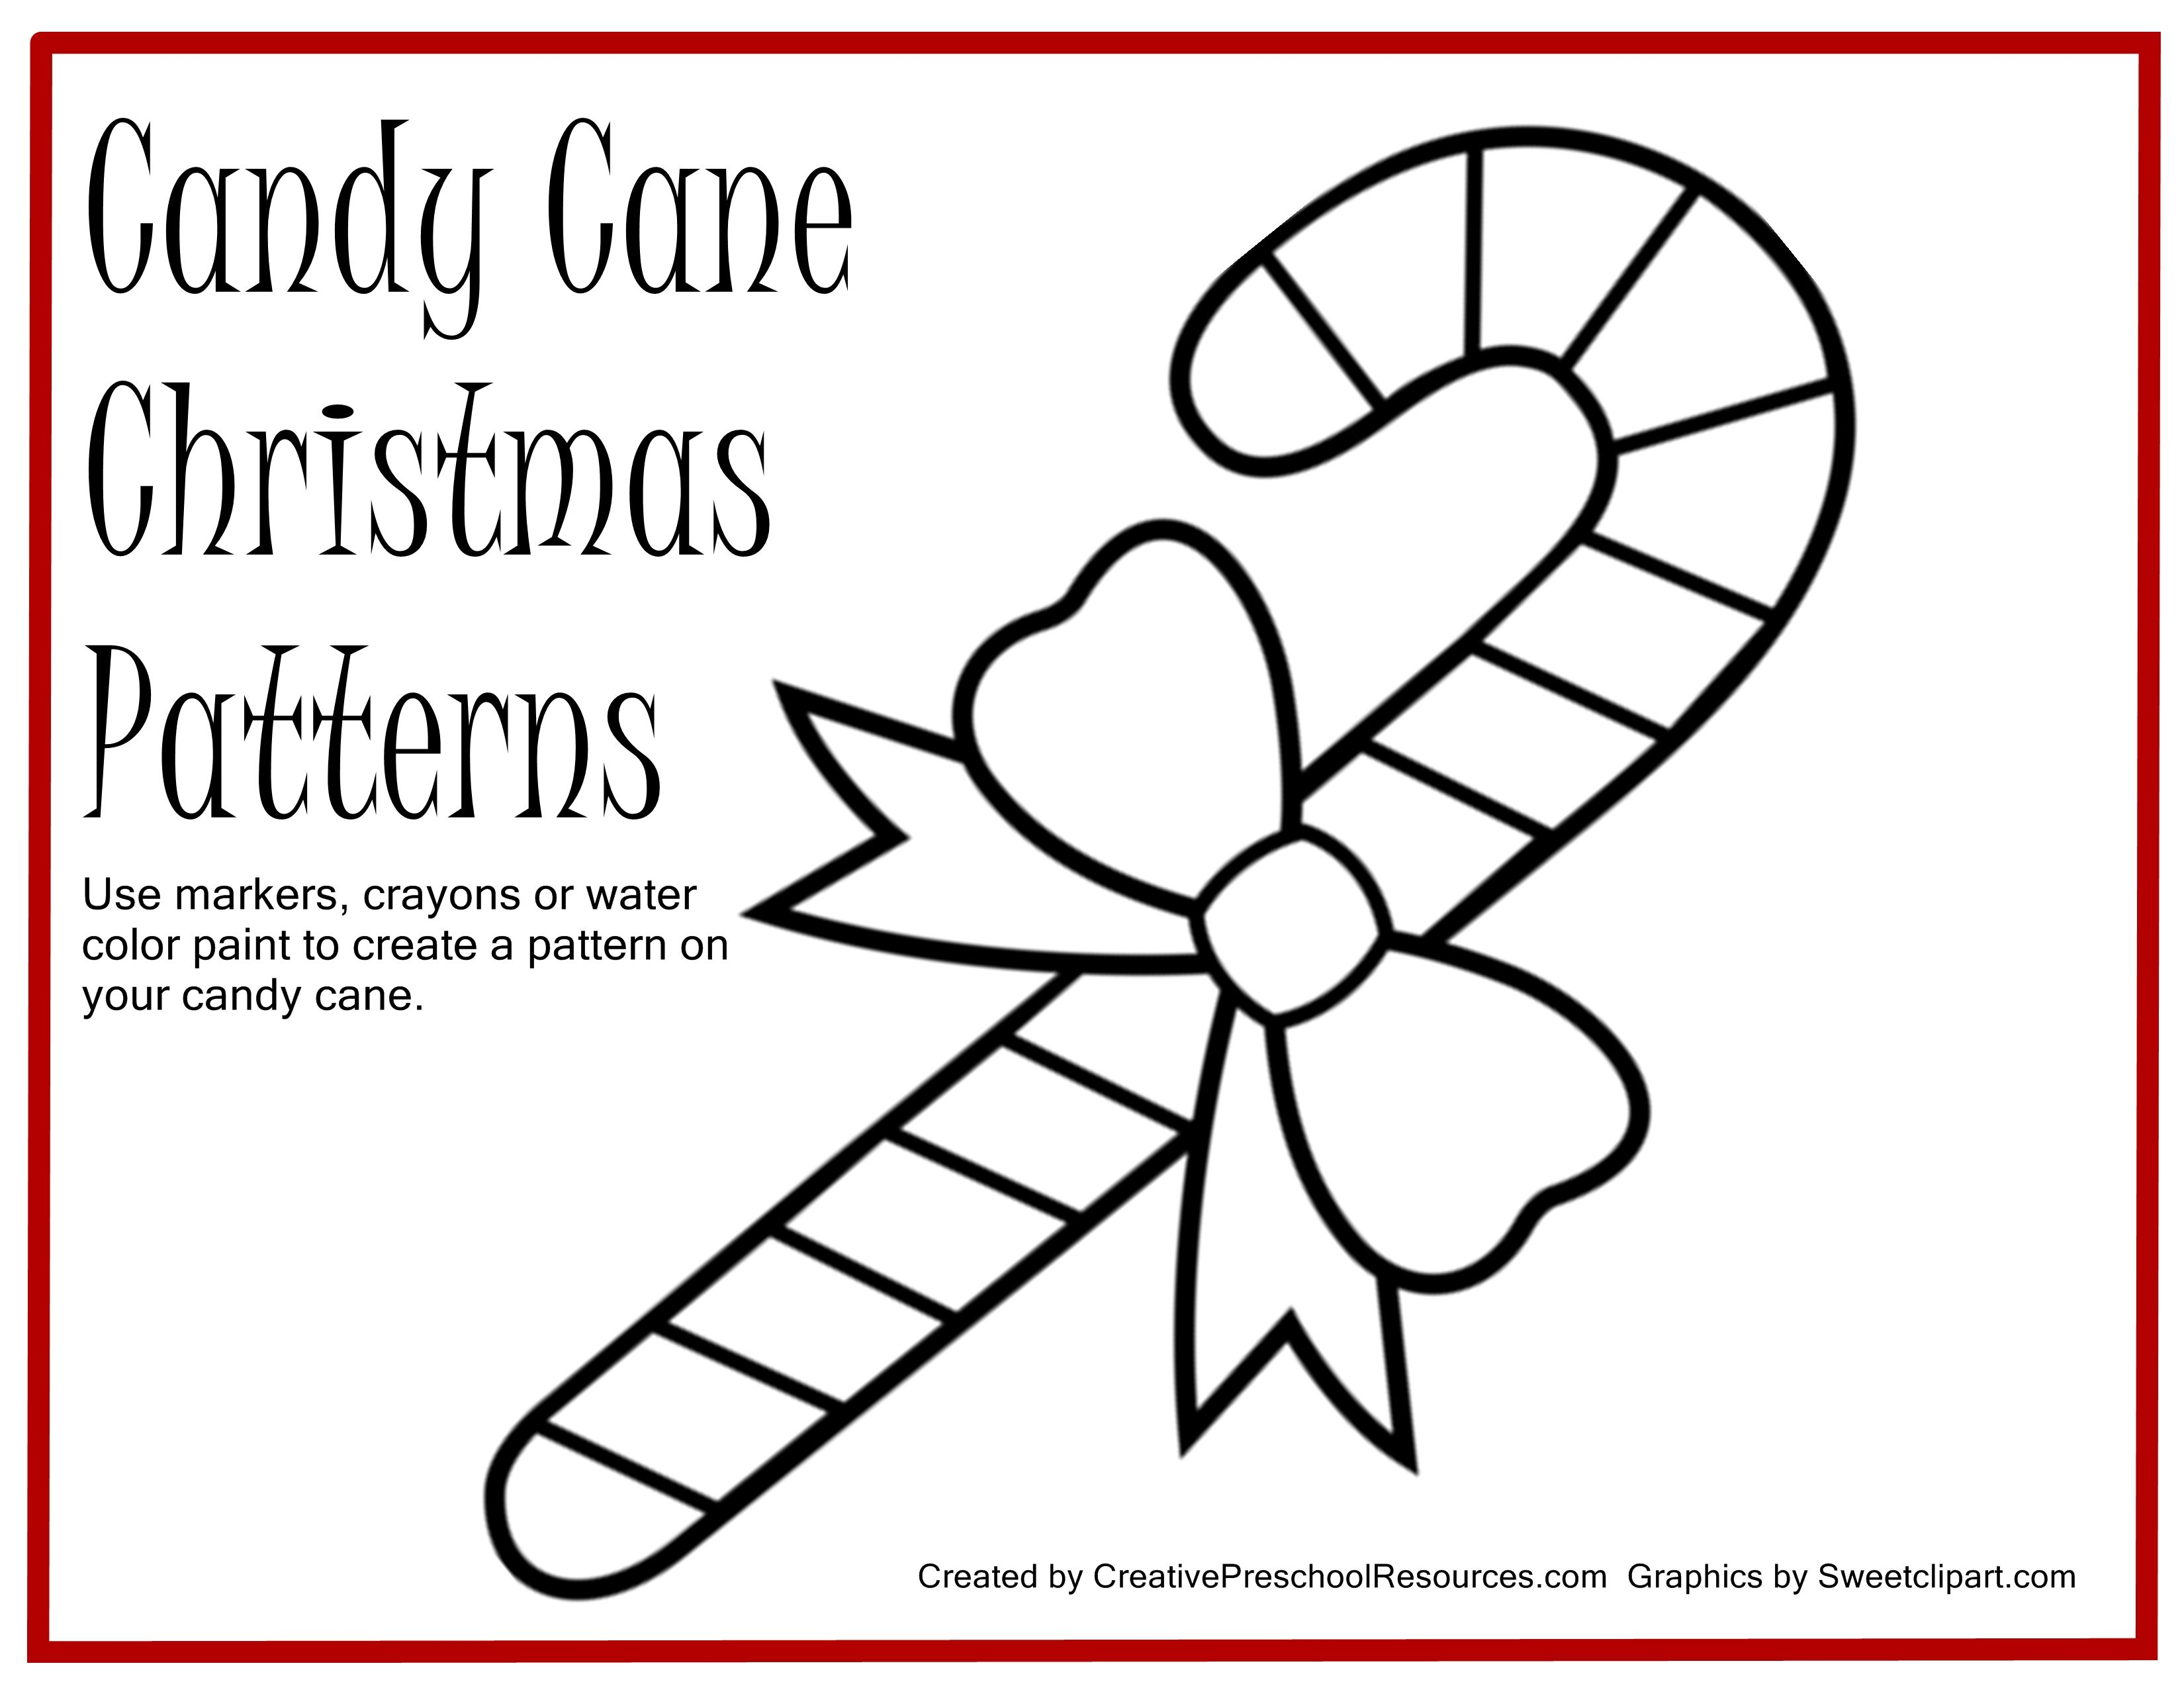 Simplified Candy Cane Printables Printable Coloring Pages Me Home #319 - Free Printable Candy Cane